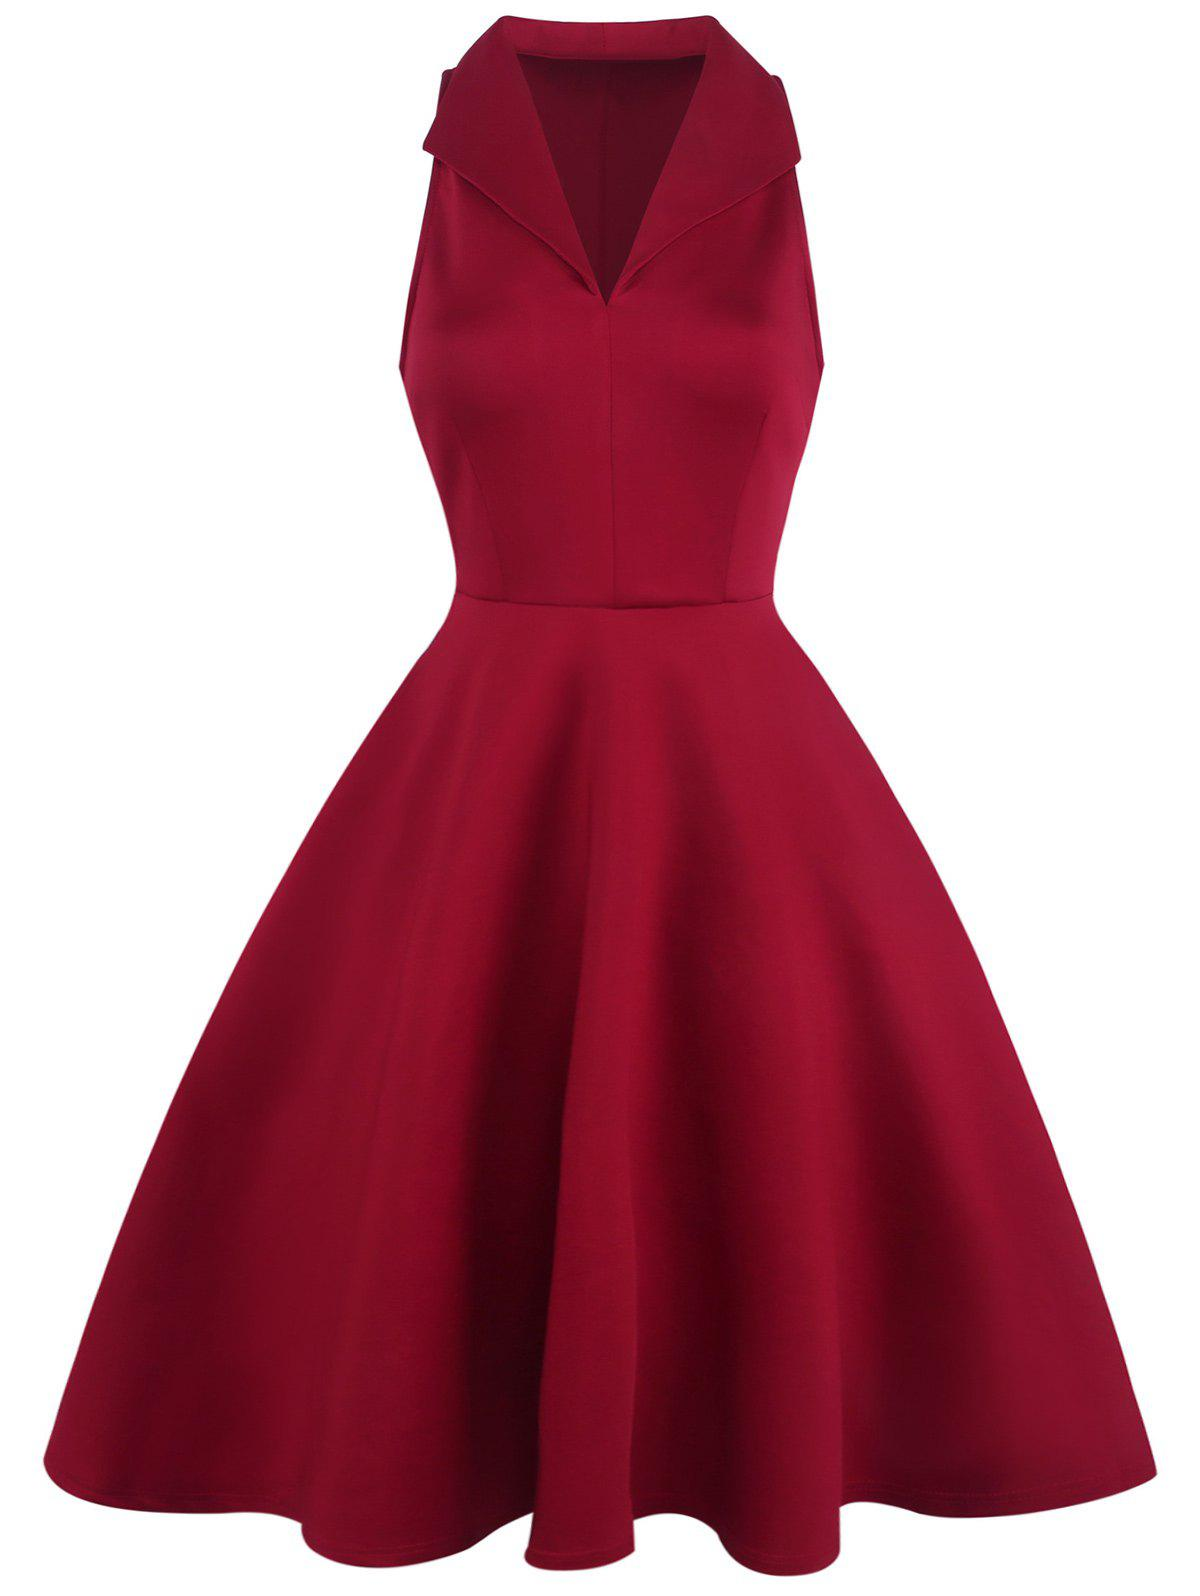 Sleeveless Lapel Vintage Dress - RED 2XL